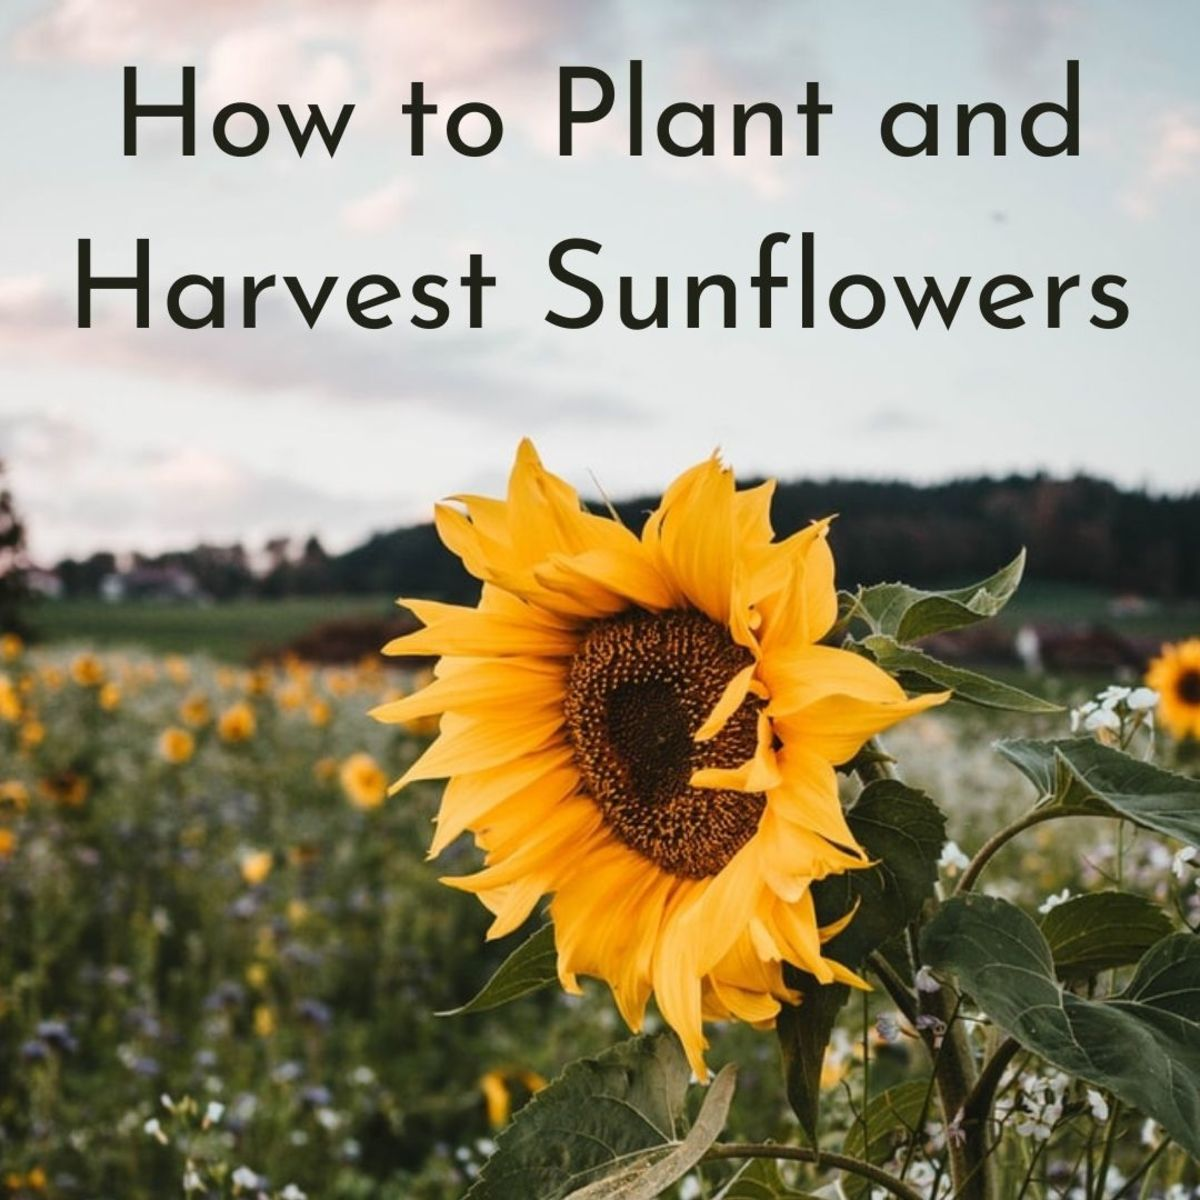 Sunflowers love the sun and will track the sun's path across the sky throughout the day.